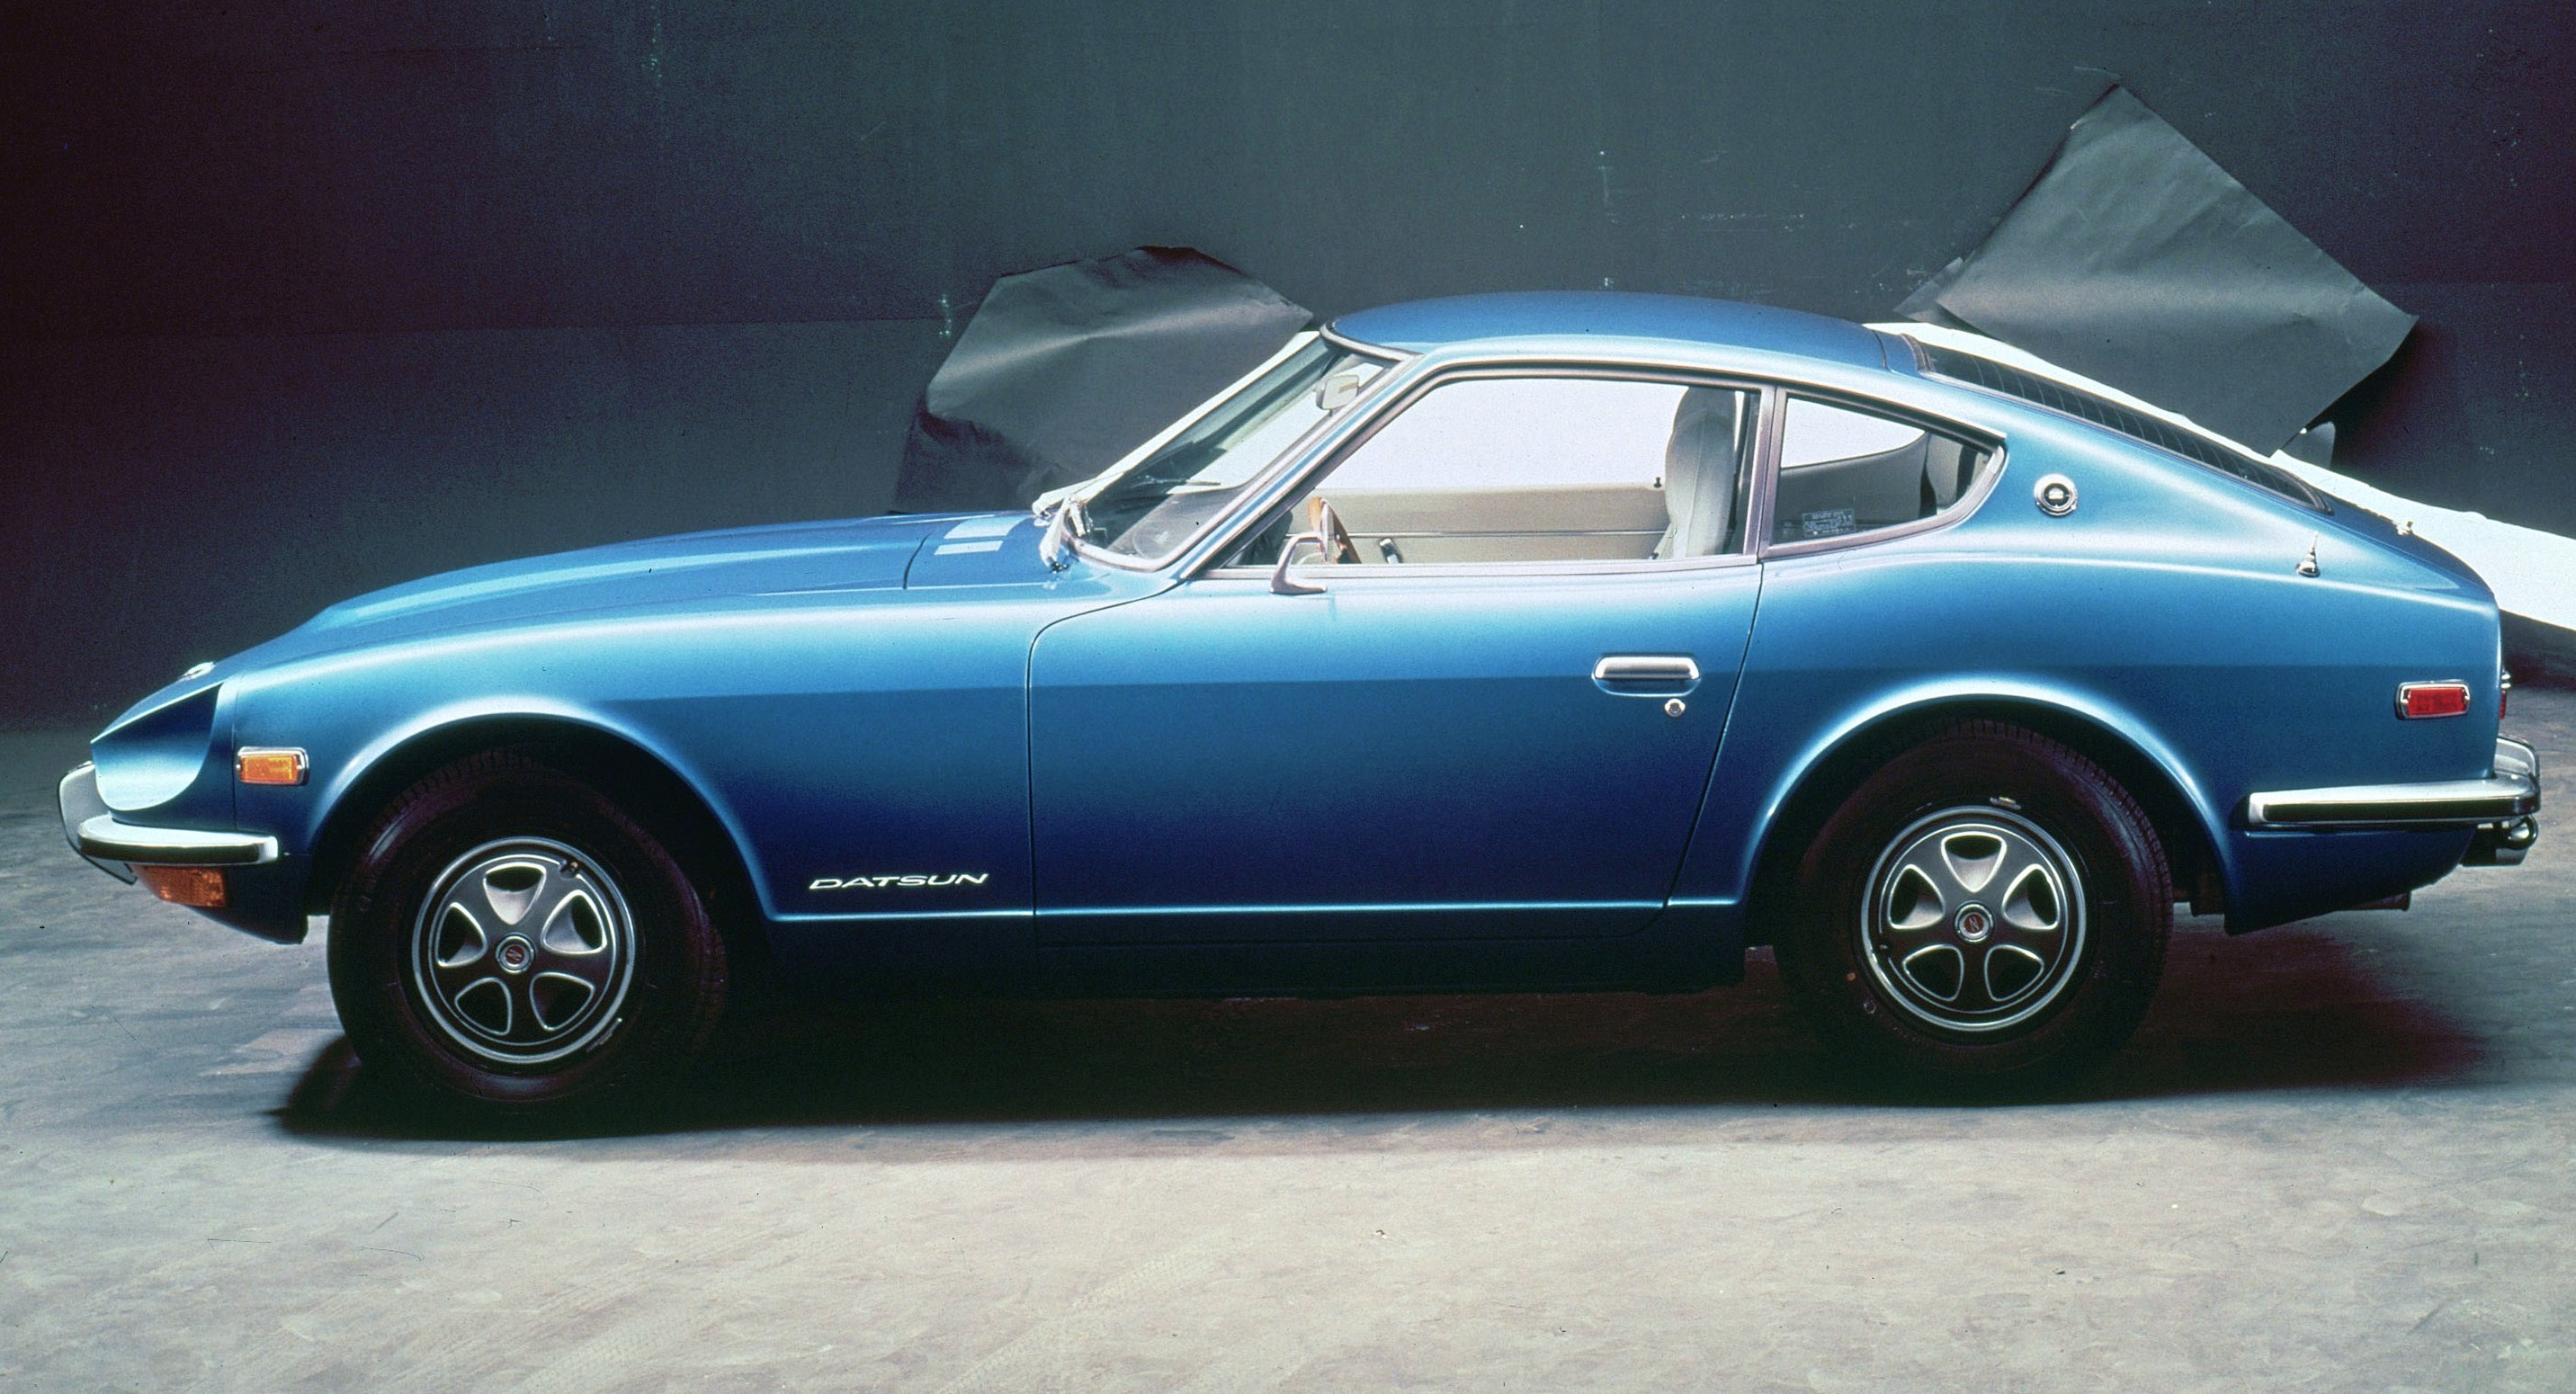 Datsun Z cars get own concours class at Forest Grove - ClassicCars ...